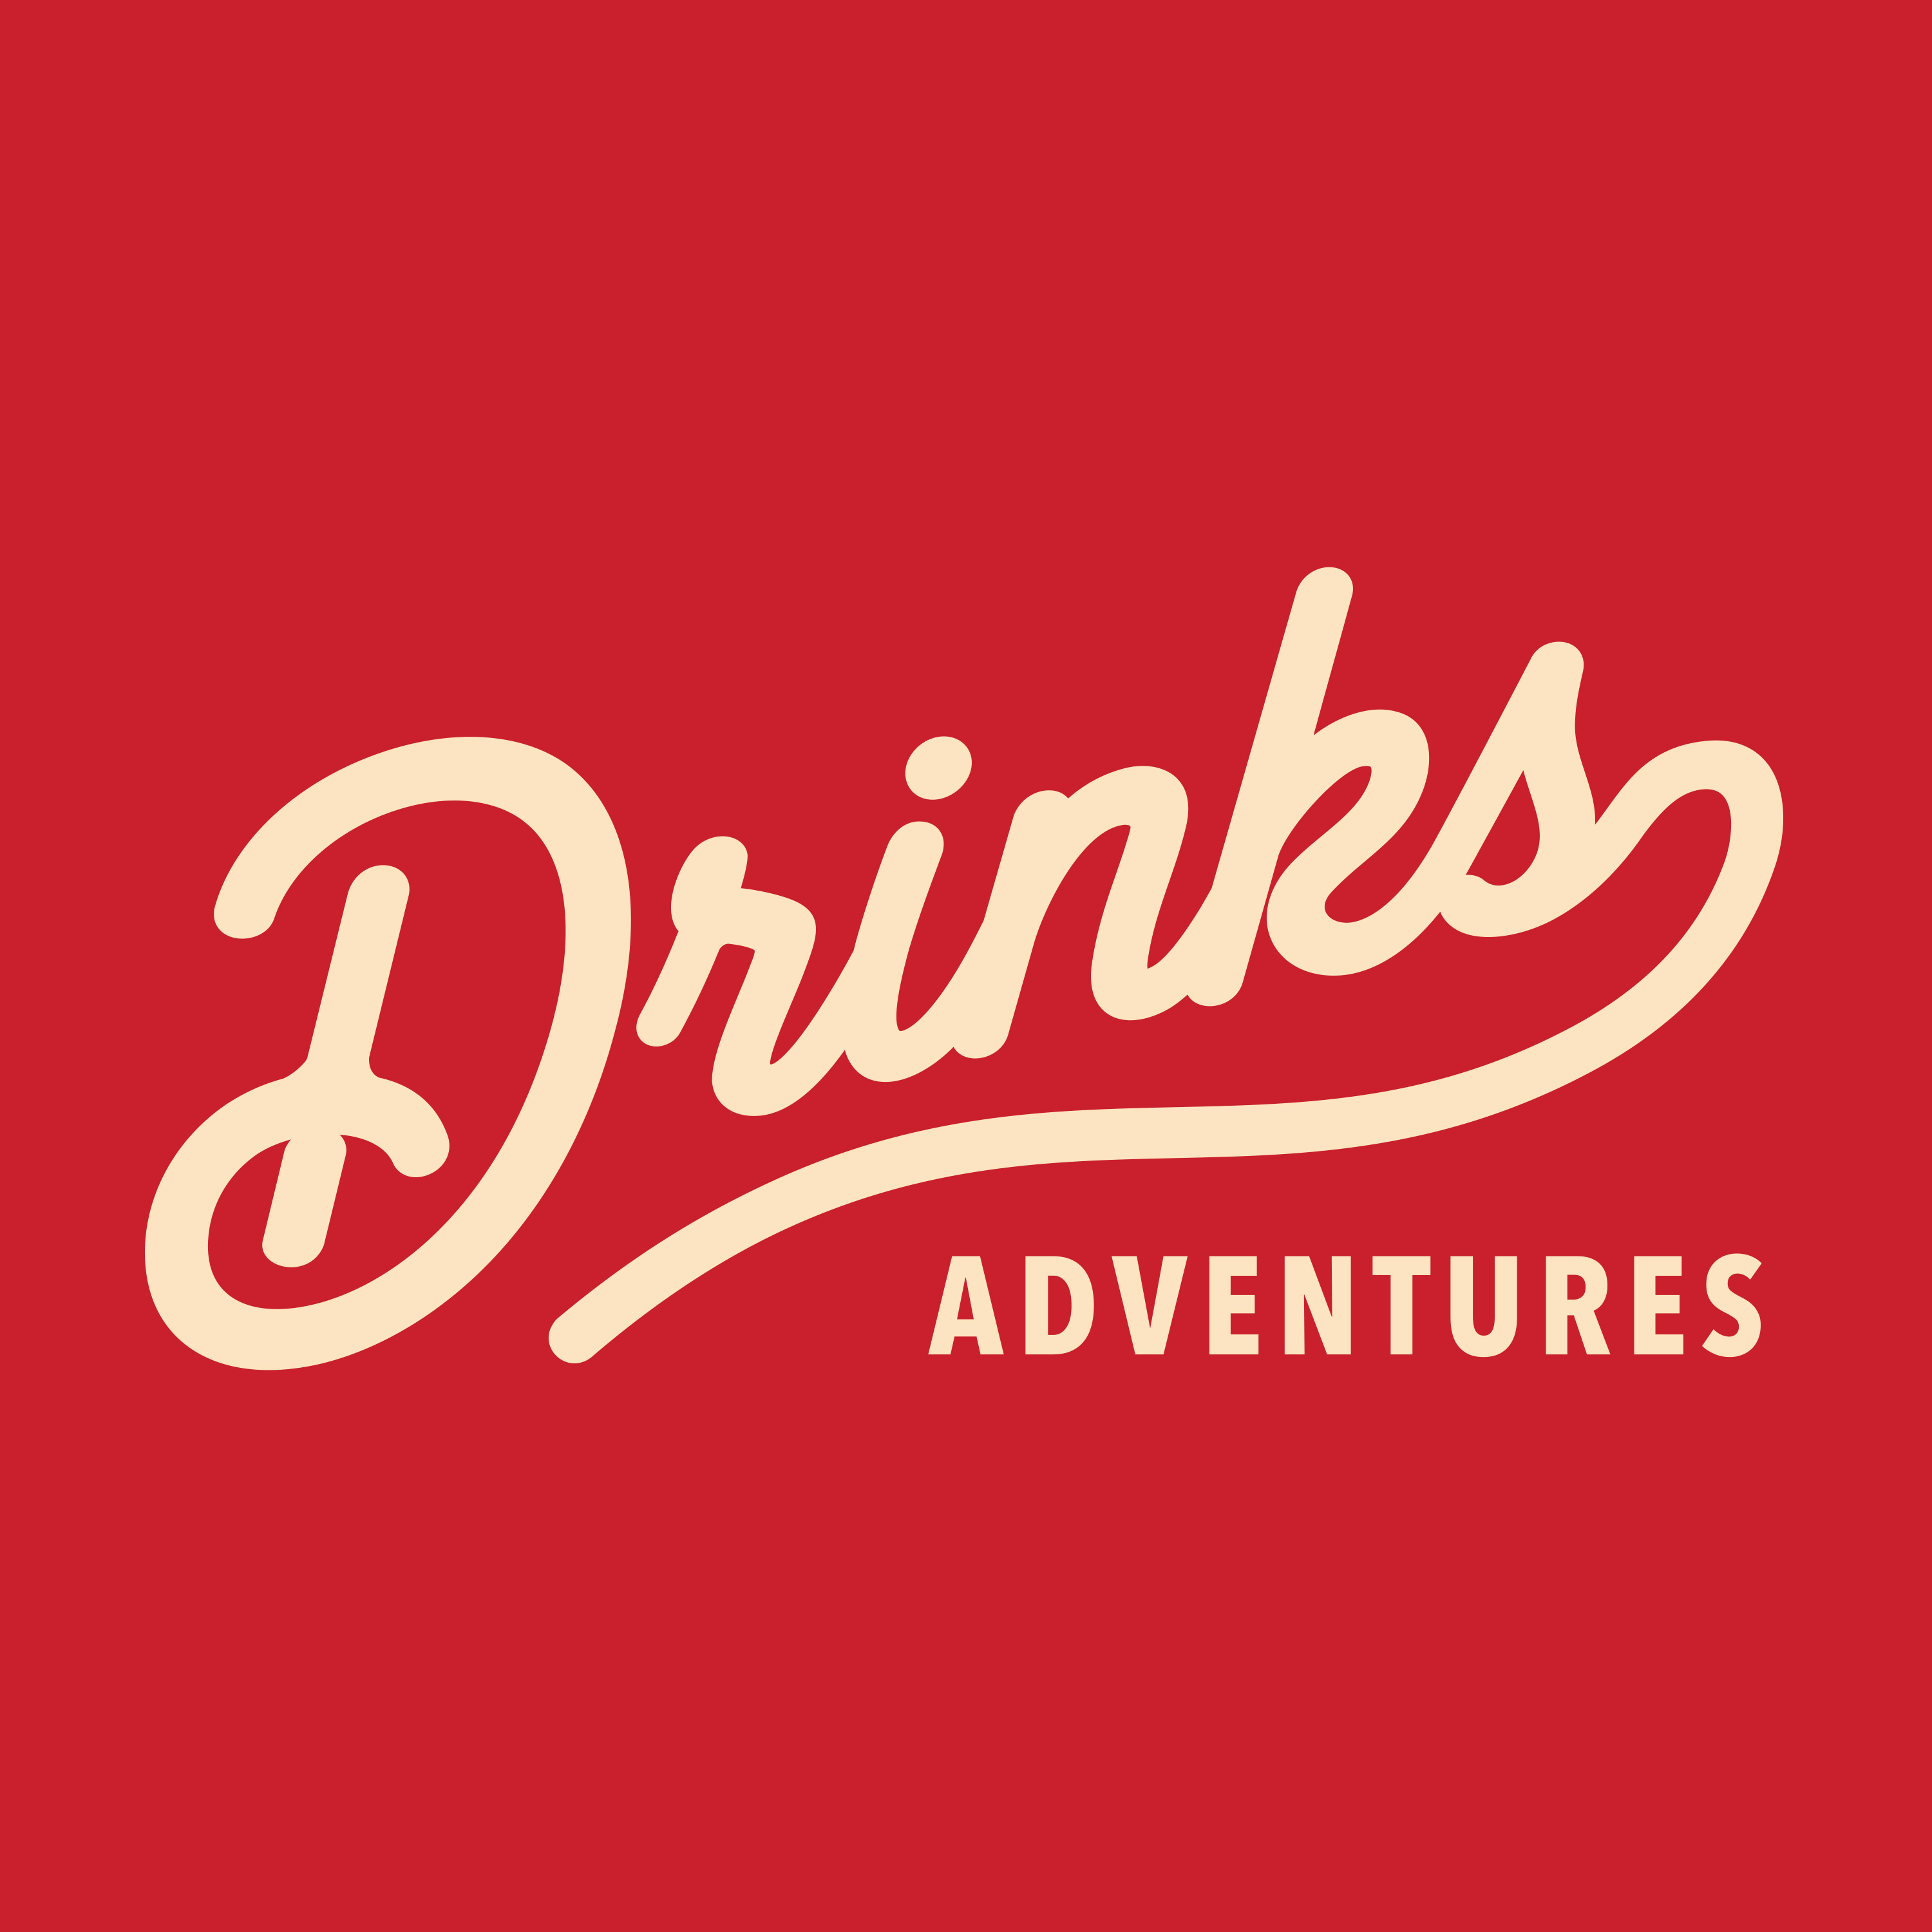 Australian whisky innovation with Archie Rose Distilling Co's Dave Withers